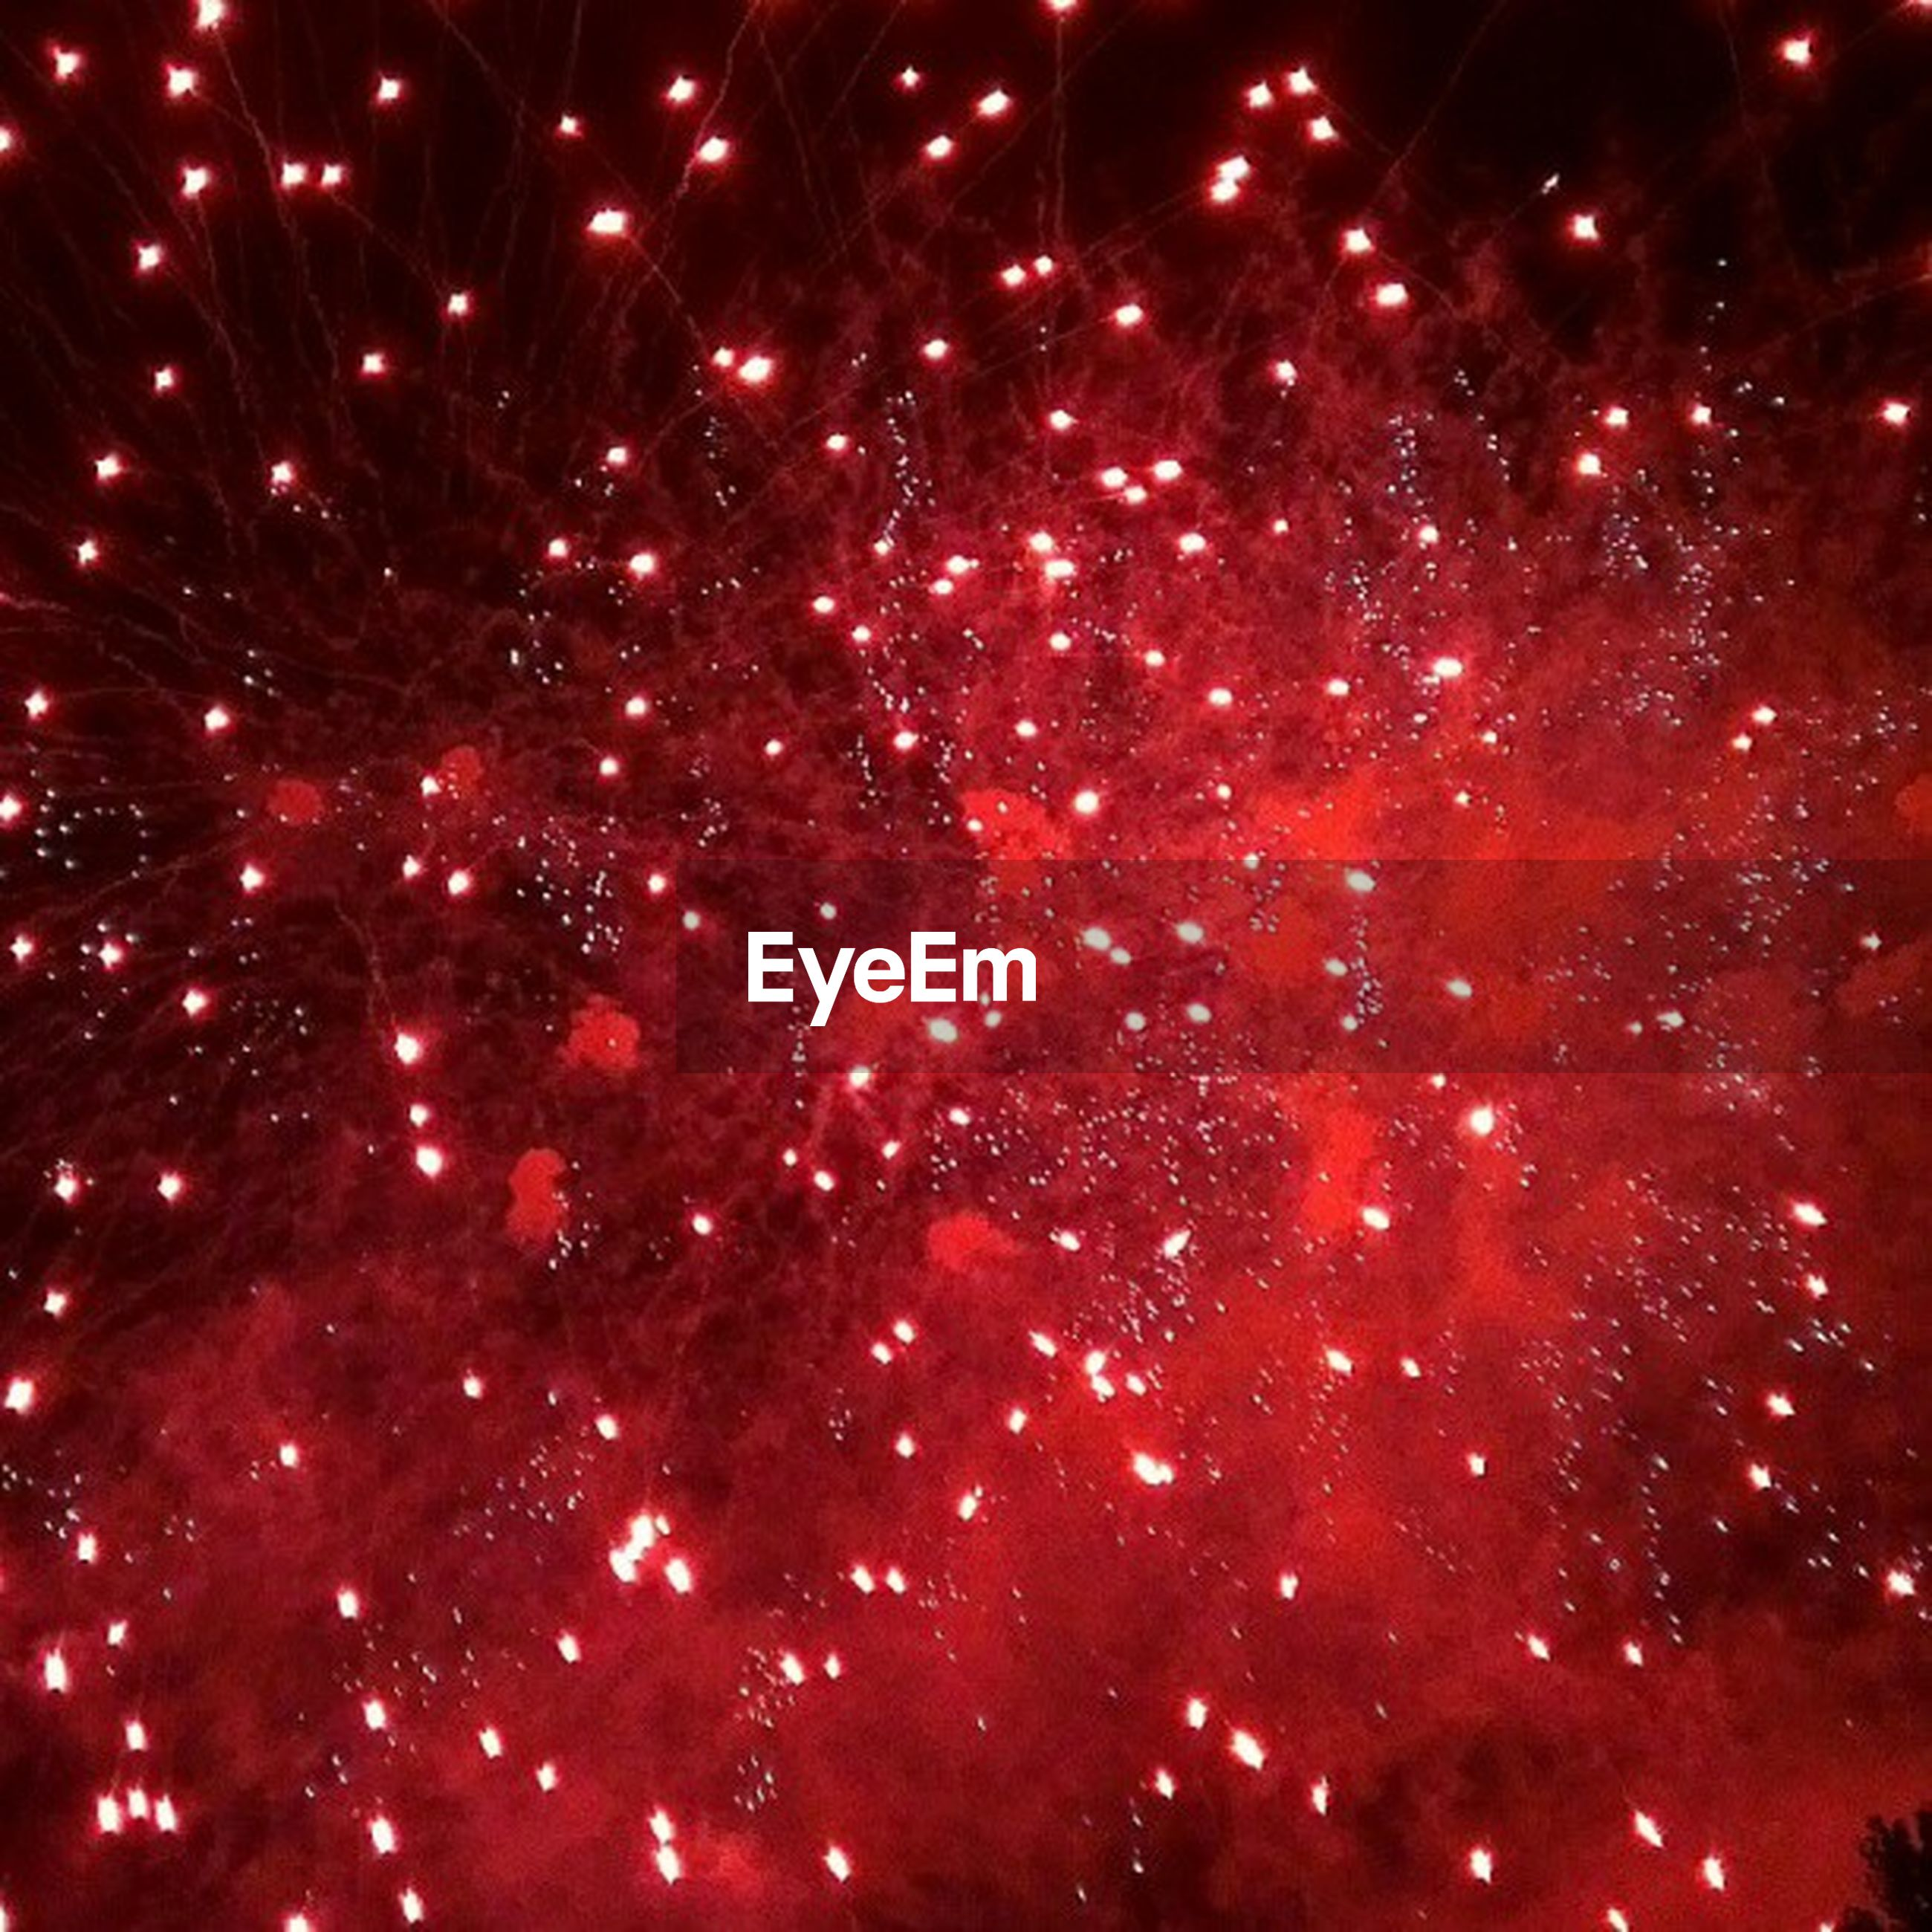 night, low angle view, backgrounds, full frame, astronomy, sky, glowing, celebration, illuminated, star - space, firework display, space, red, star field, galaxy, beauty in nature, star, scenics, no people, exploding